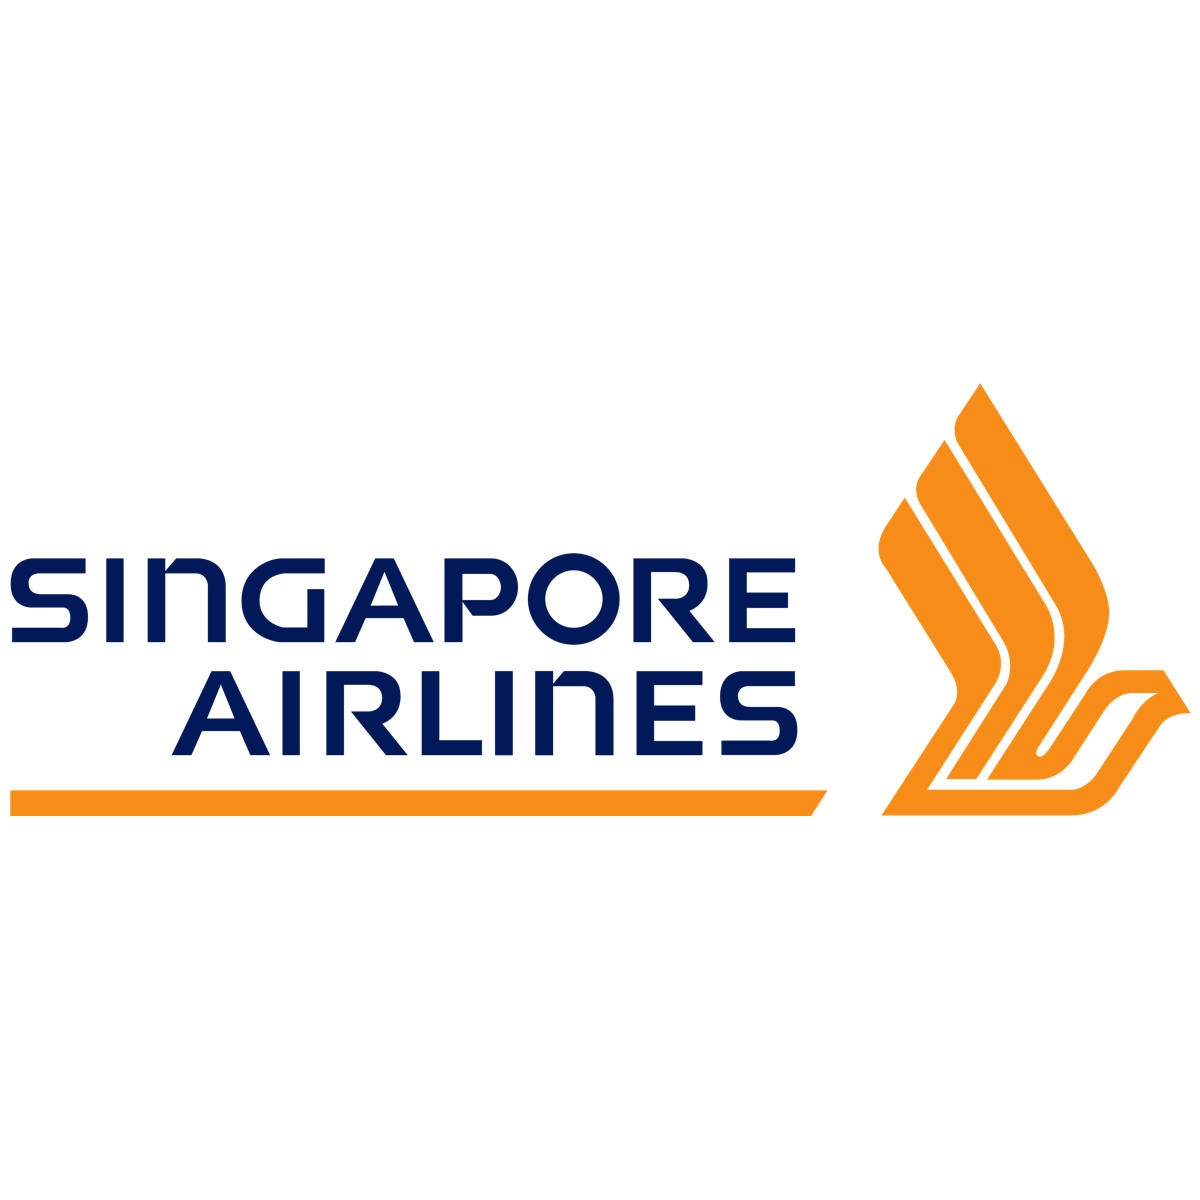 Singapore Airlines (SIA) - UOB Kay Hian Research 2018-07-27: 1qfy19: Beats Expectations But Declining Pax Yields A Concern